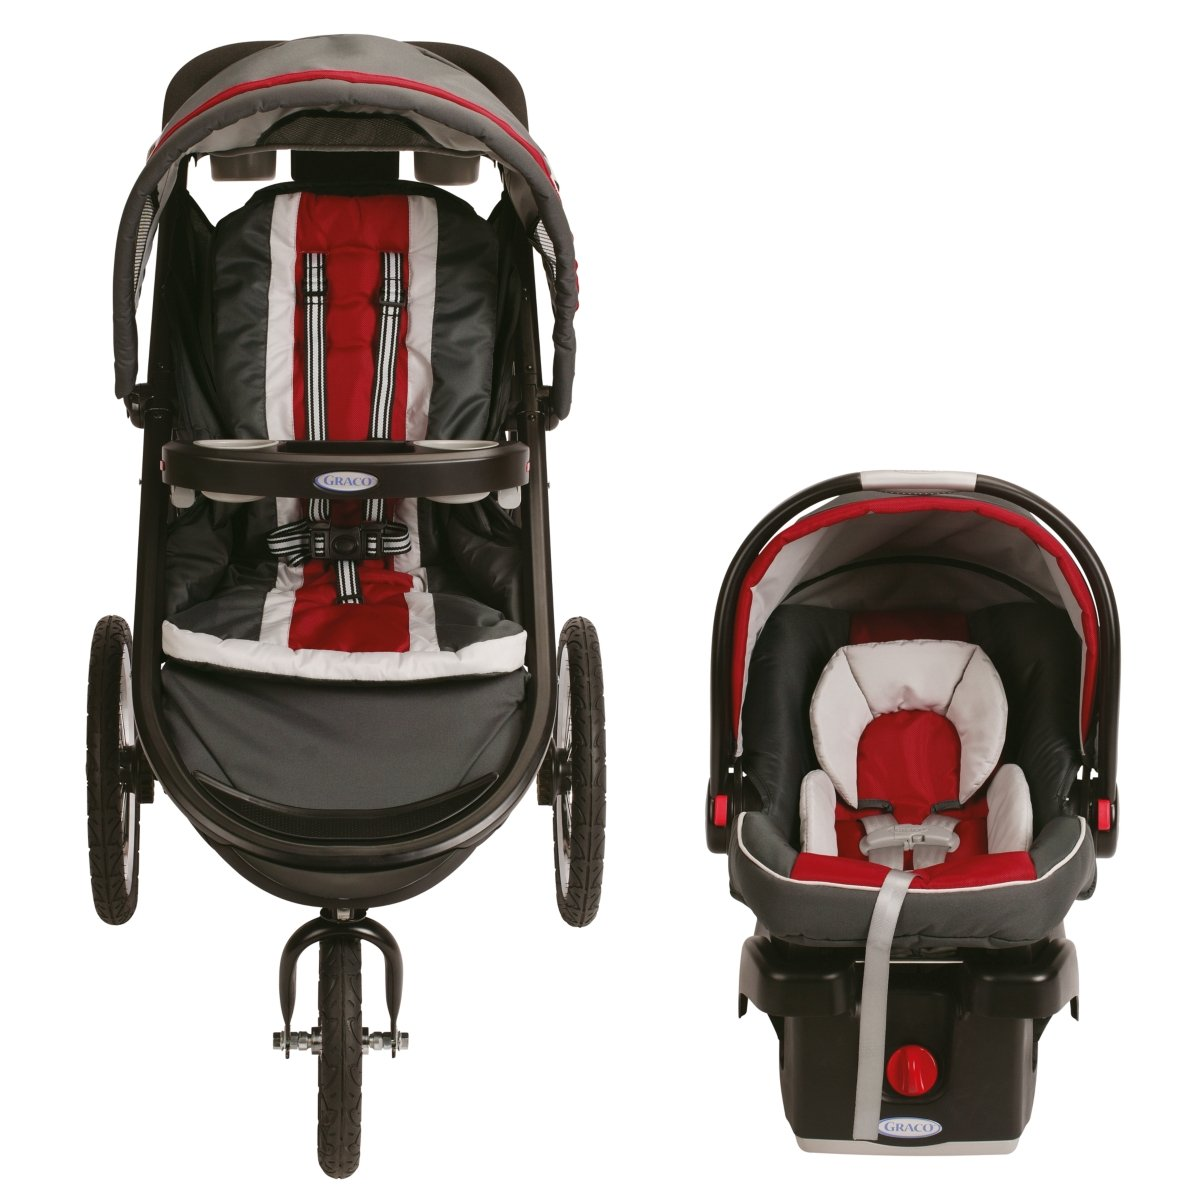 Amazon Graco FastAction Fold Jogger Click Connect Travel System Chili Red Discontinued By Manufacturer Infant Car Seat Stroller Systems